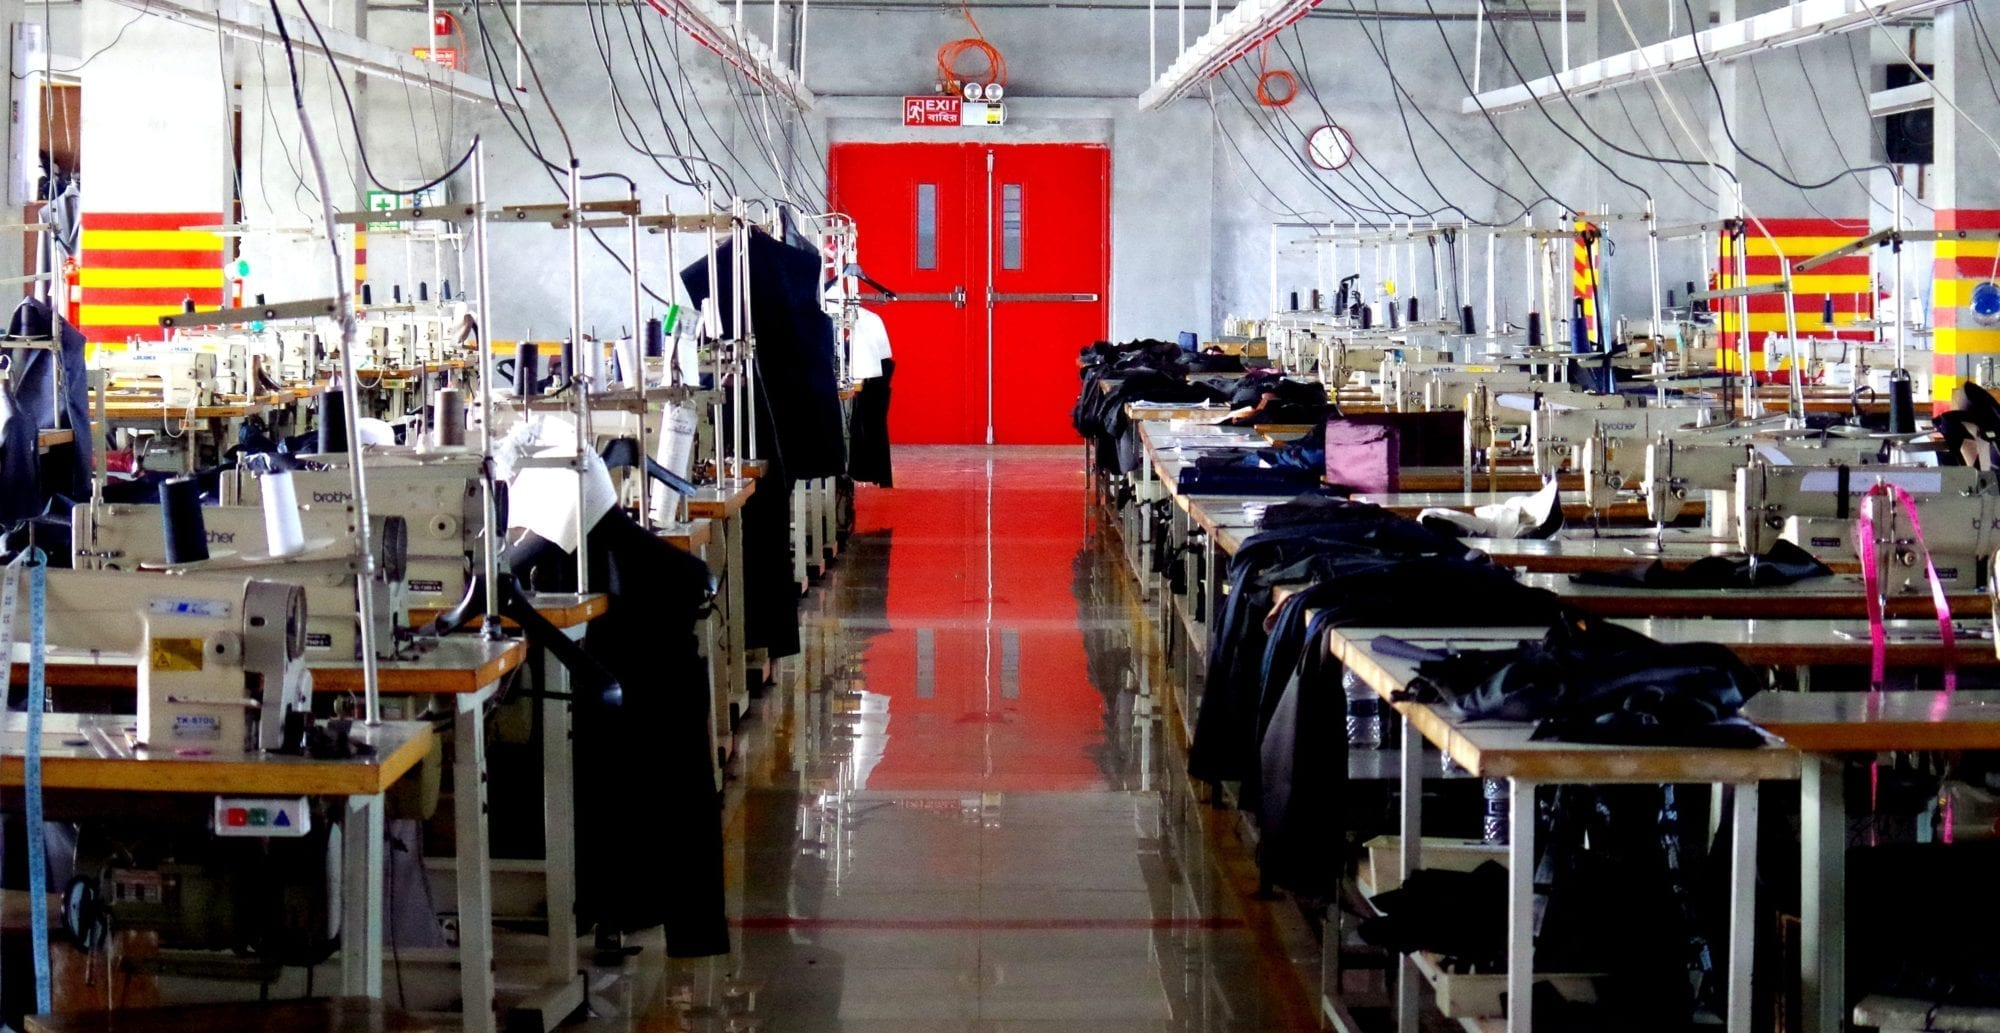 Invisible Work: Exploitation in the Global Garment Industry